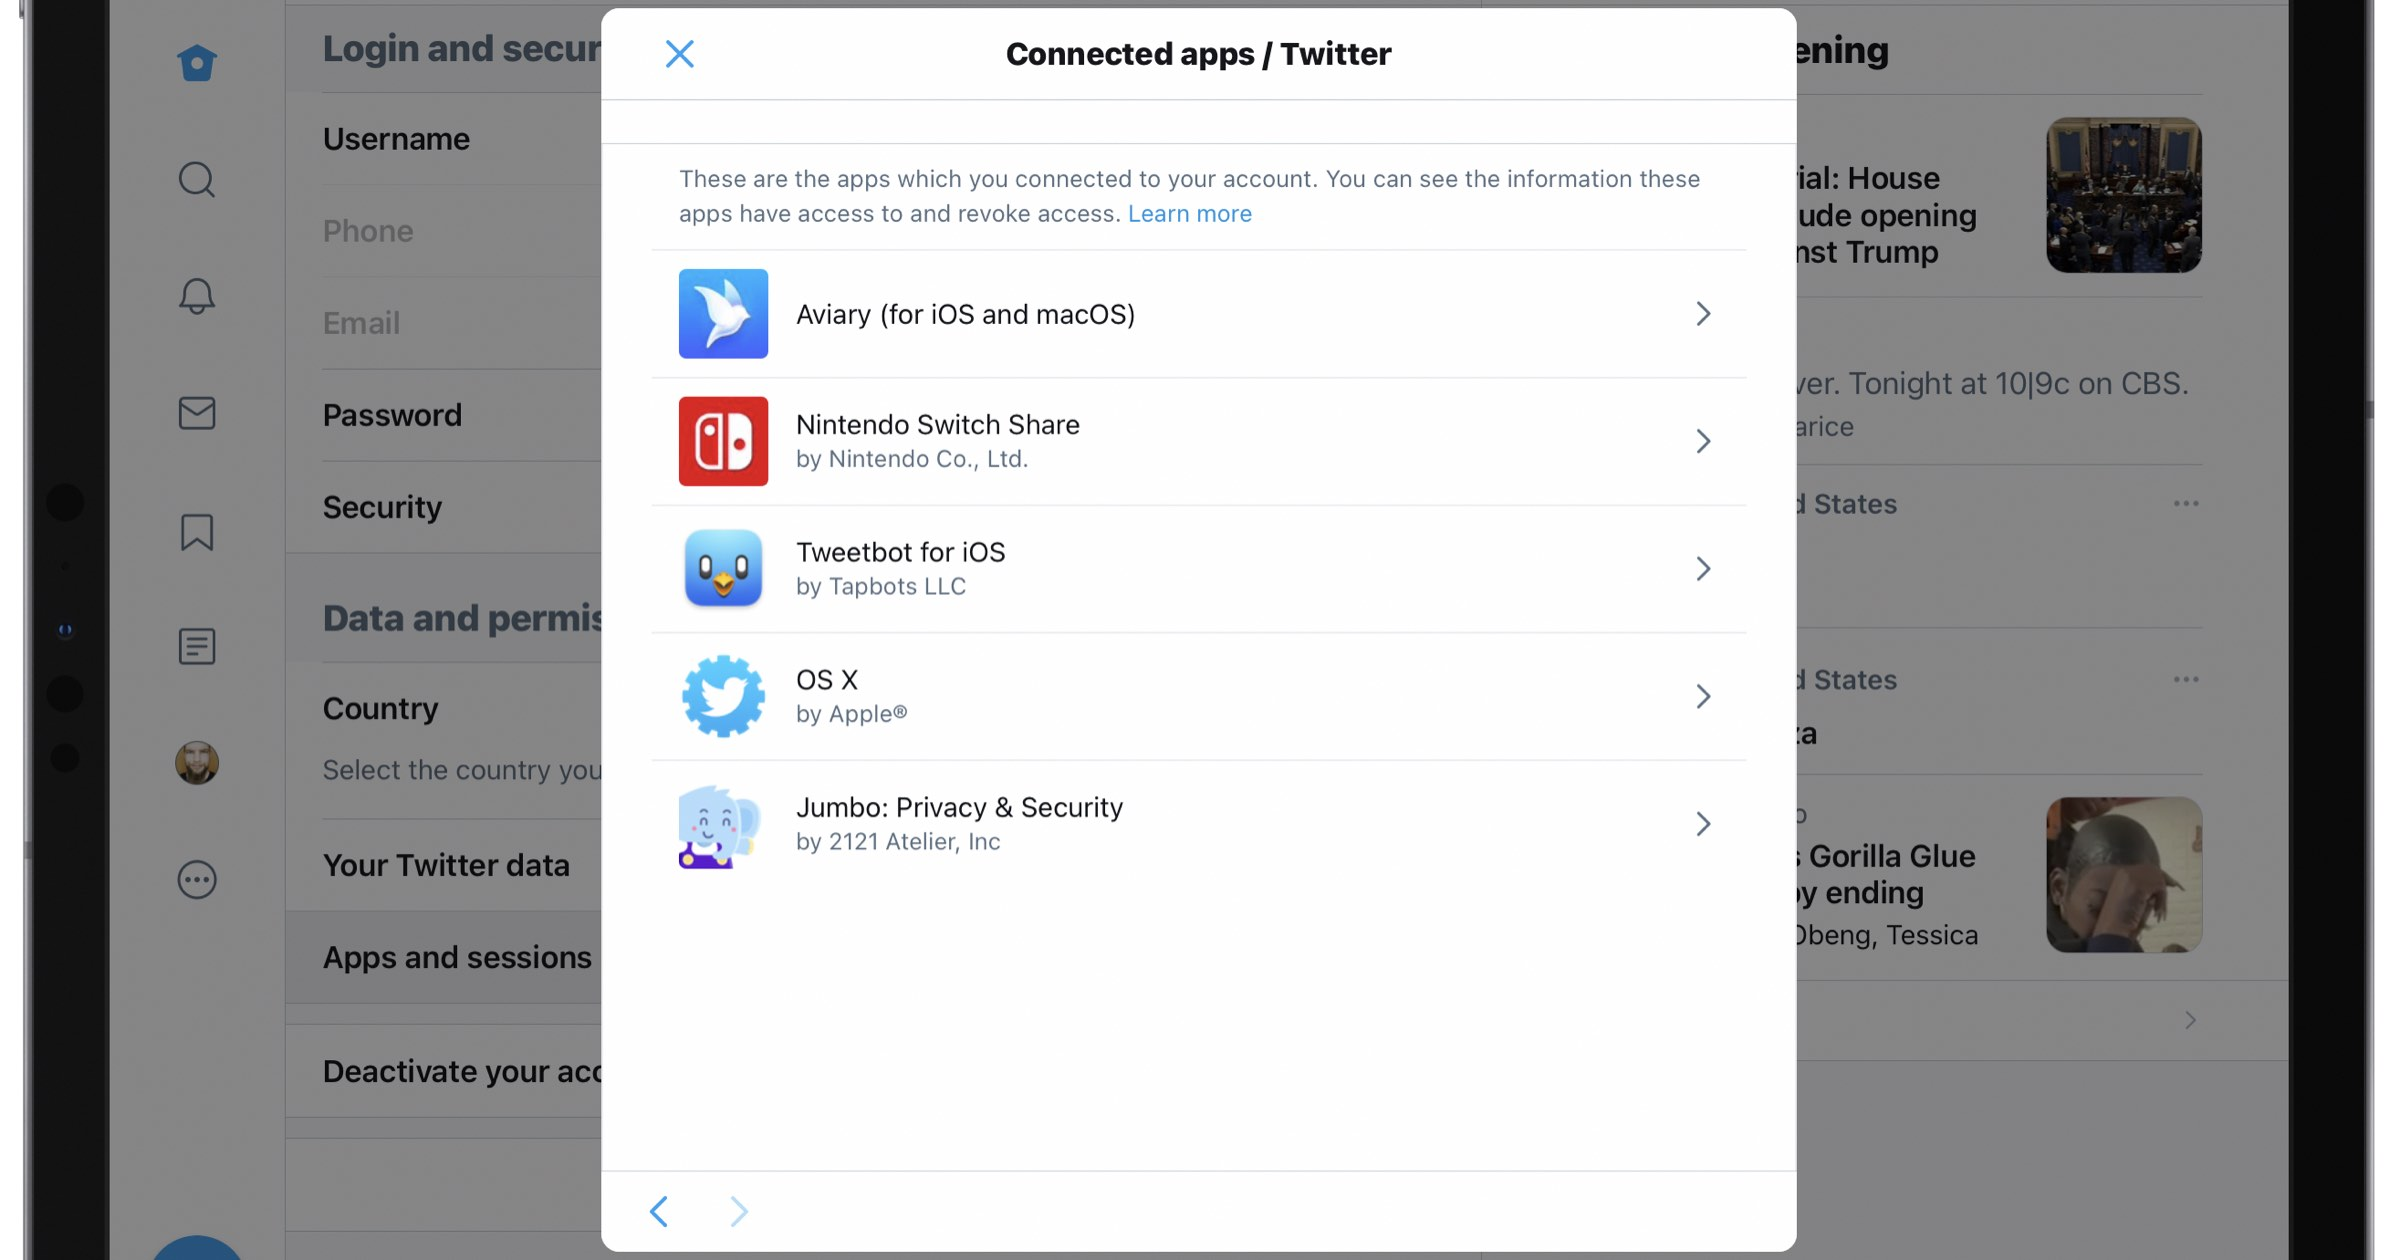 List of connected twitter apps